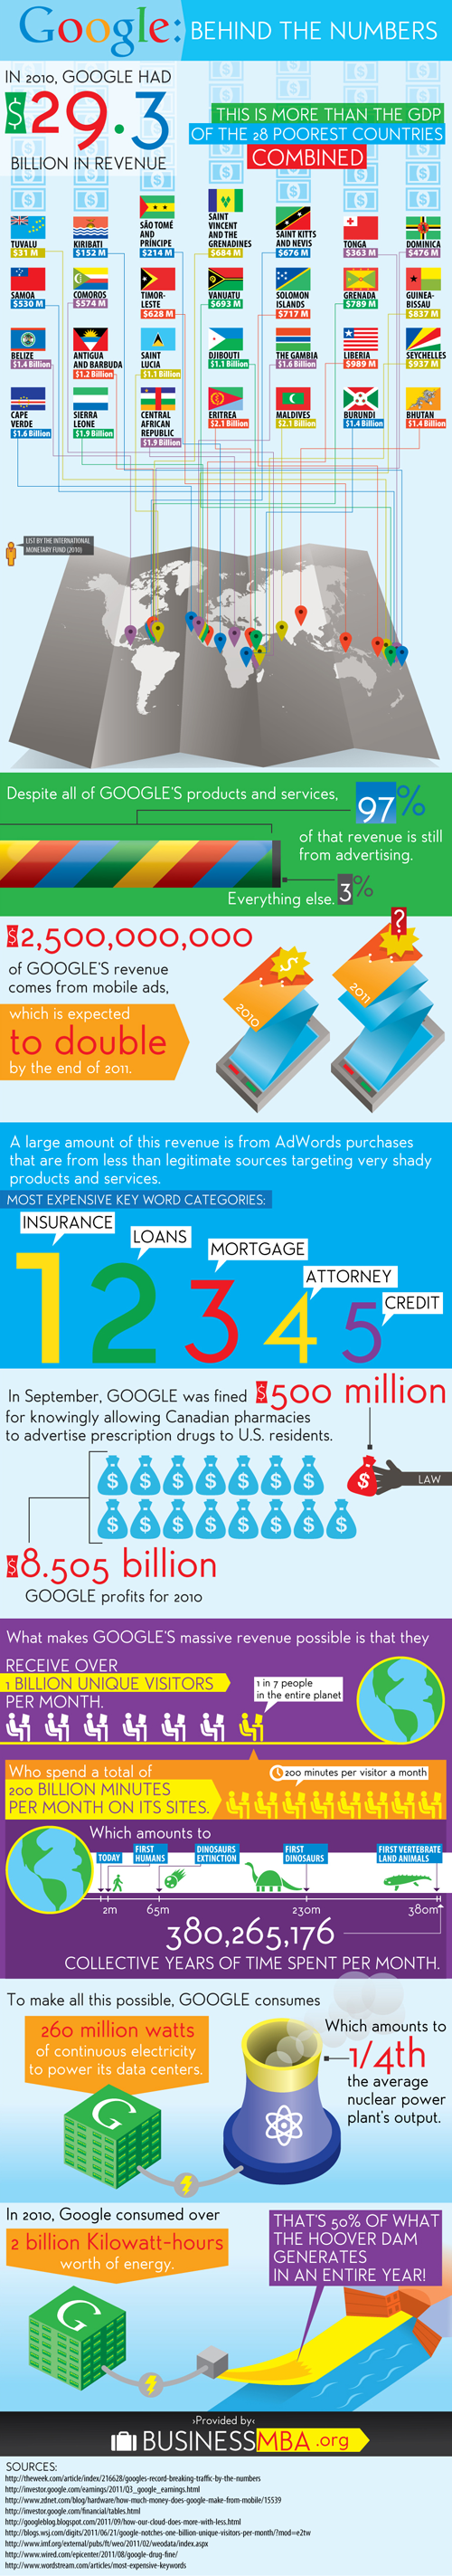 Google Adwords: Behind The Numbers